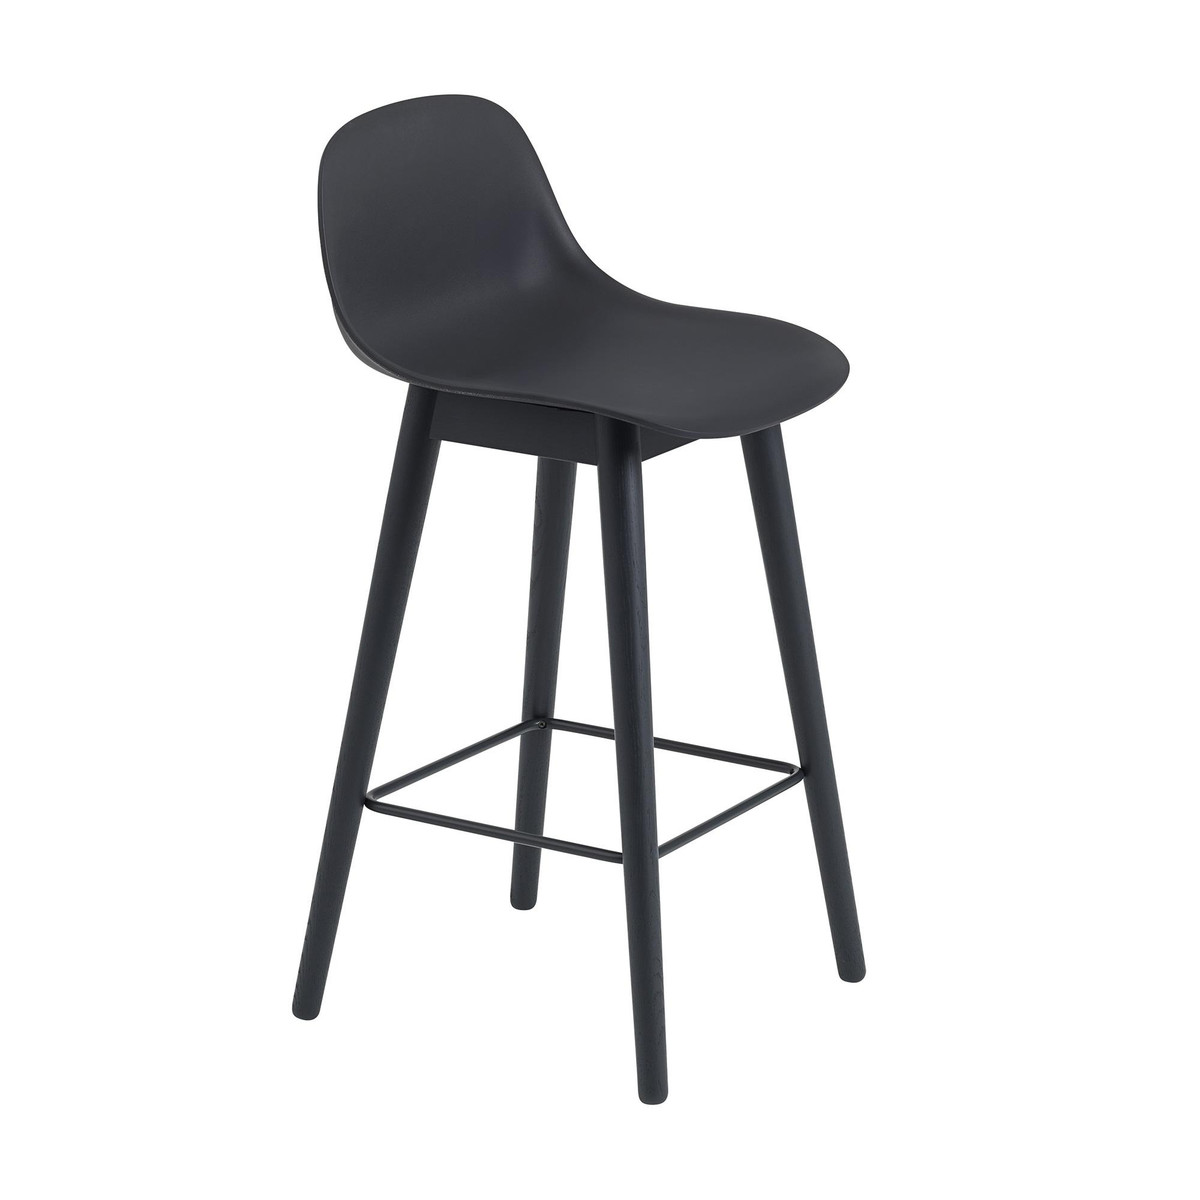 Fiber Bar Stool With Backrest Wood Base 65cm - black/seating plastic/WxHxD  sc 1 st  AmbienteDirect & Fiber Bar Stool With Backrest Wood Base | Muuto | AmbienteDirect.com islam-shia.org